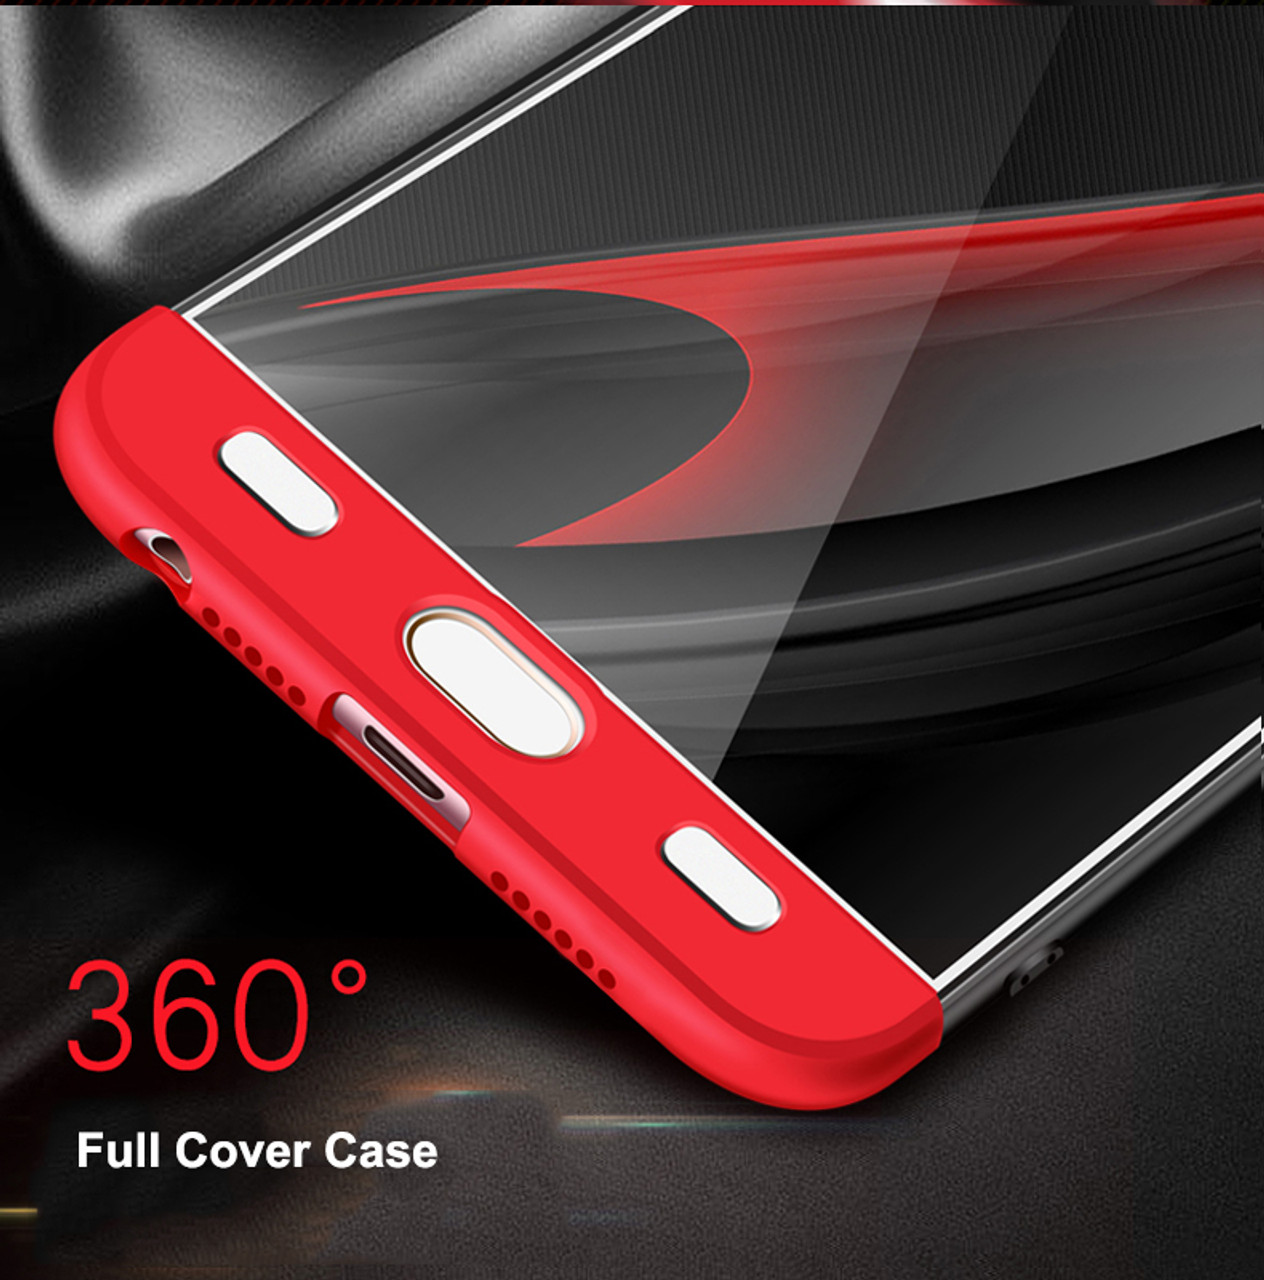 hot sale online e5761 aa9ff ipngve For OPPO A57 3 In 1 360 Full Cover Case For OPPO A59 Hard Plastic  Anti-knock Matte Phone Bags Fundas Coque For OPPO F1S